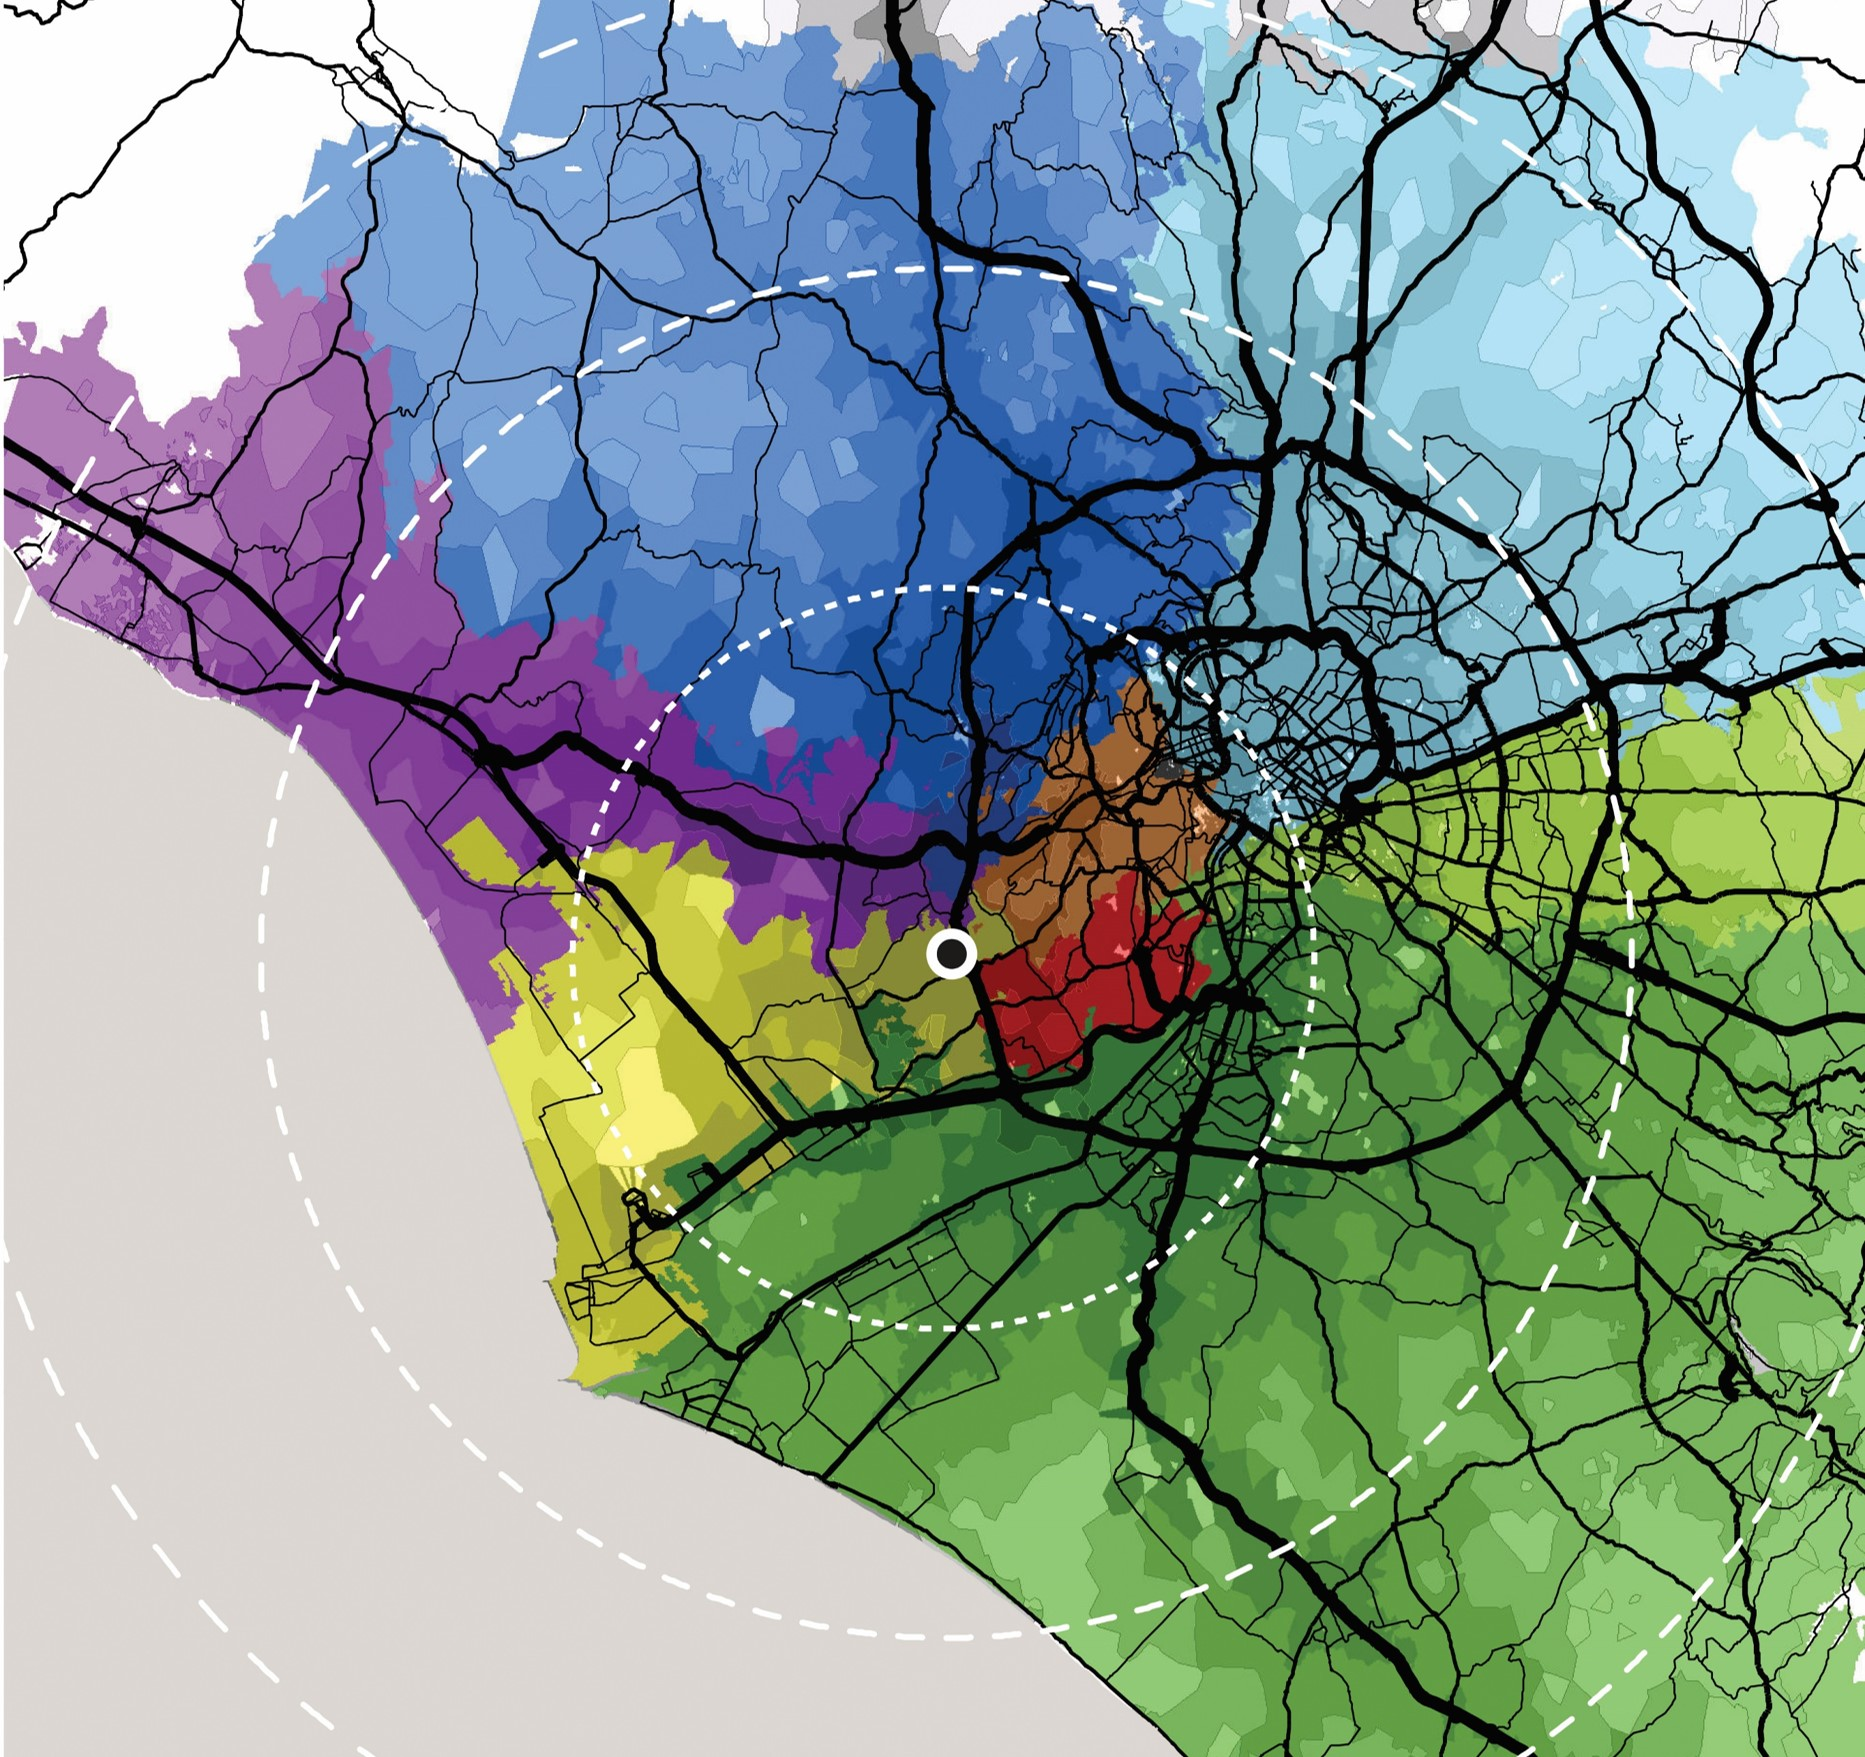 Systematica-Pescaccio Retail Parking-Catchment Area Analysis